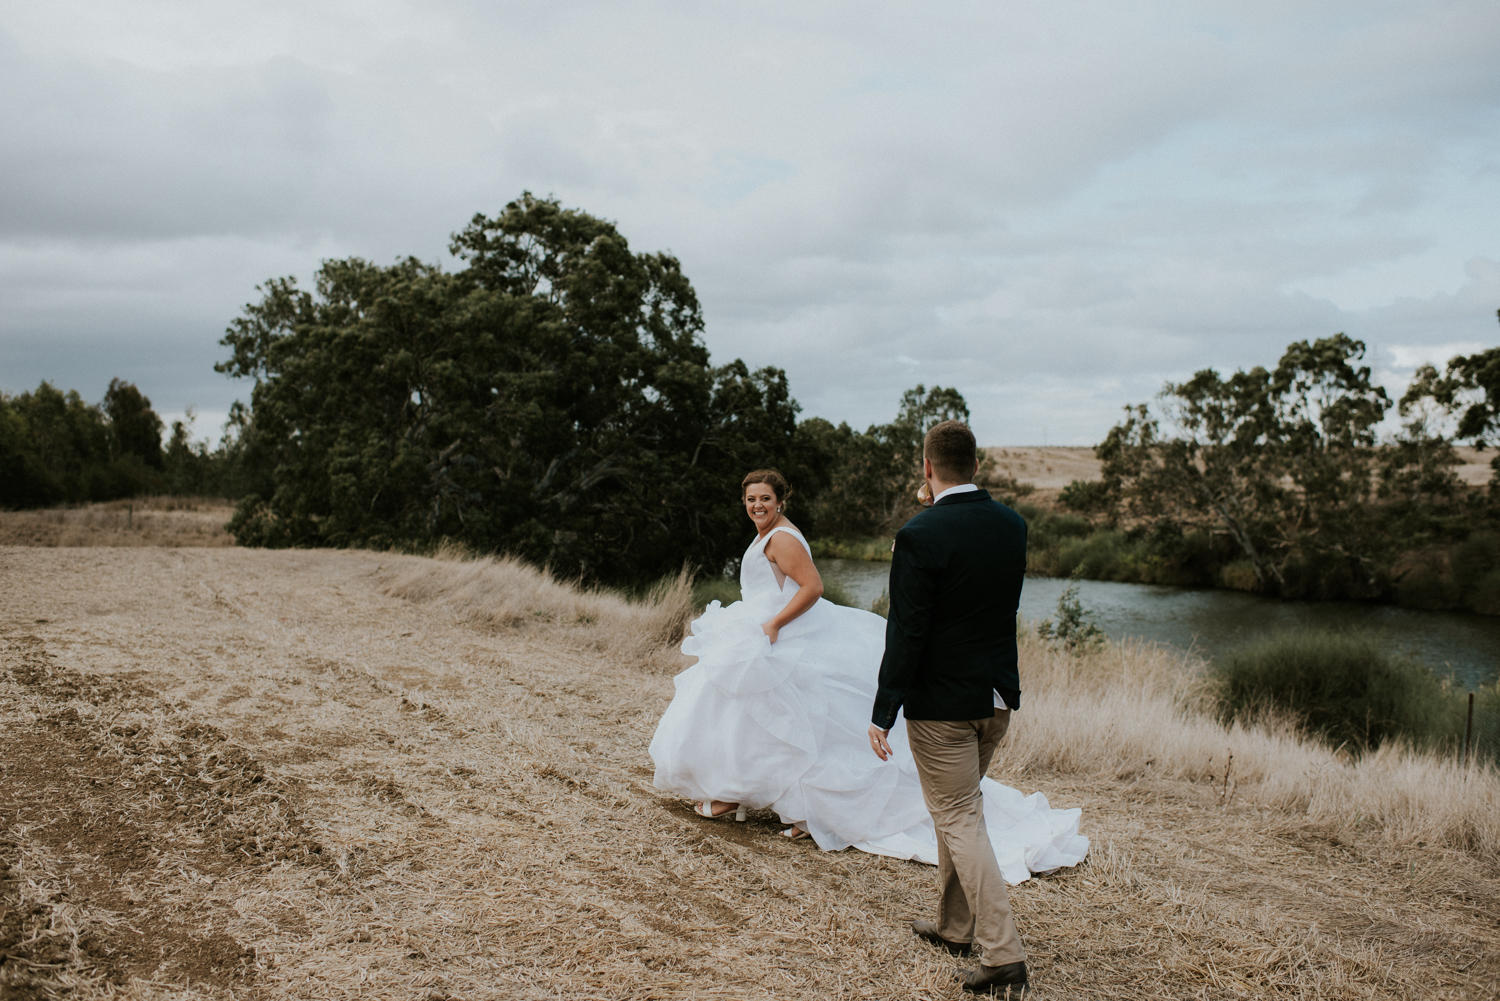 Brisbane Wedding Photographer | Engagement-Elopement Photography-84.jpg